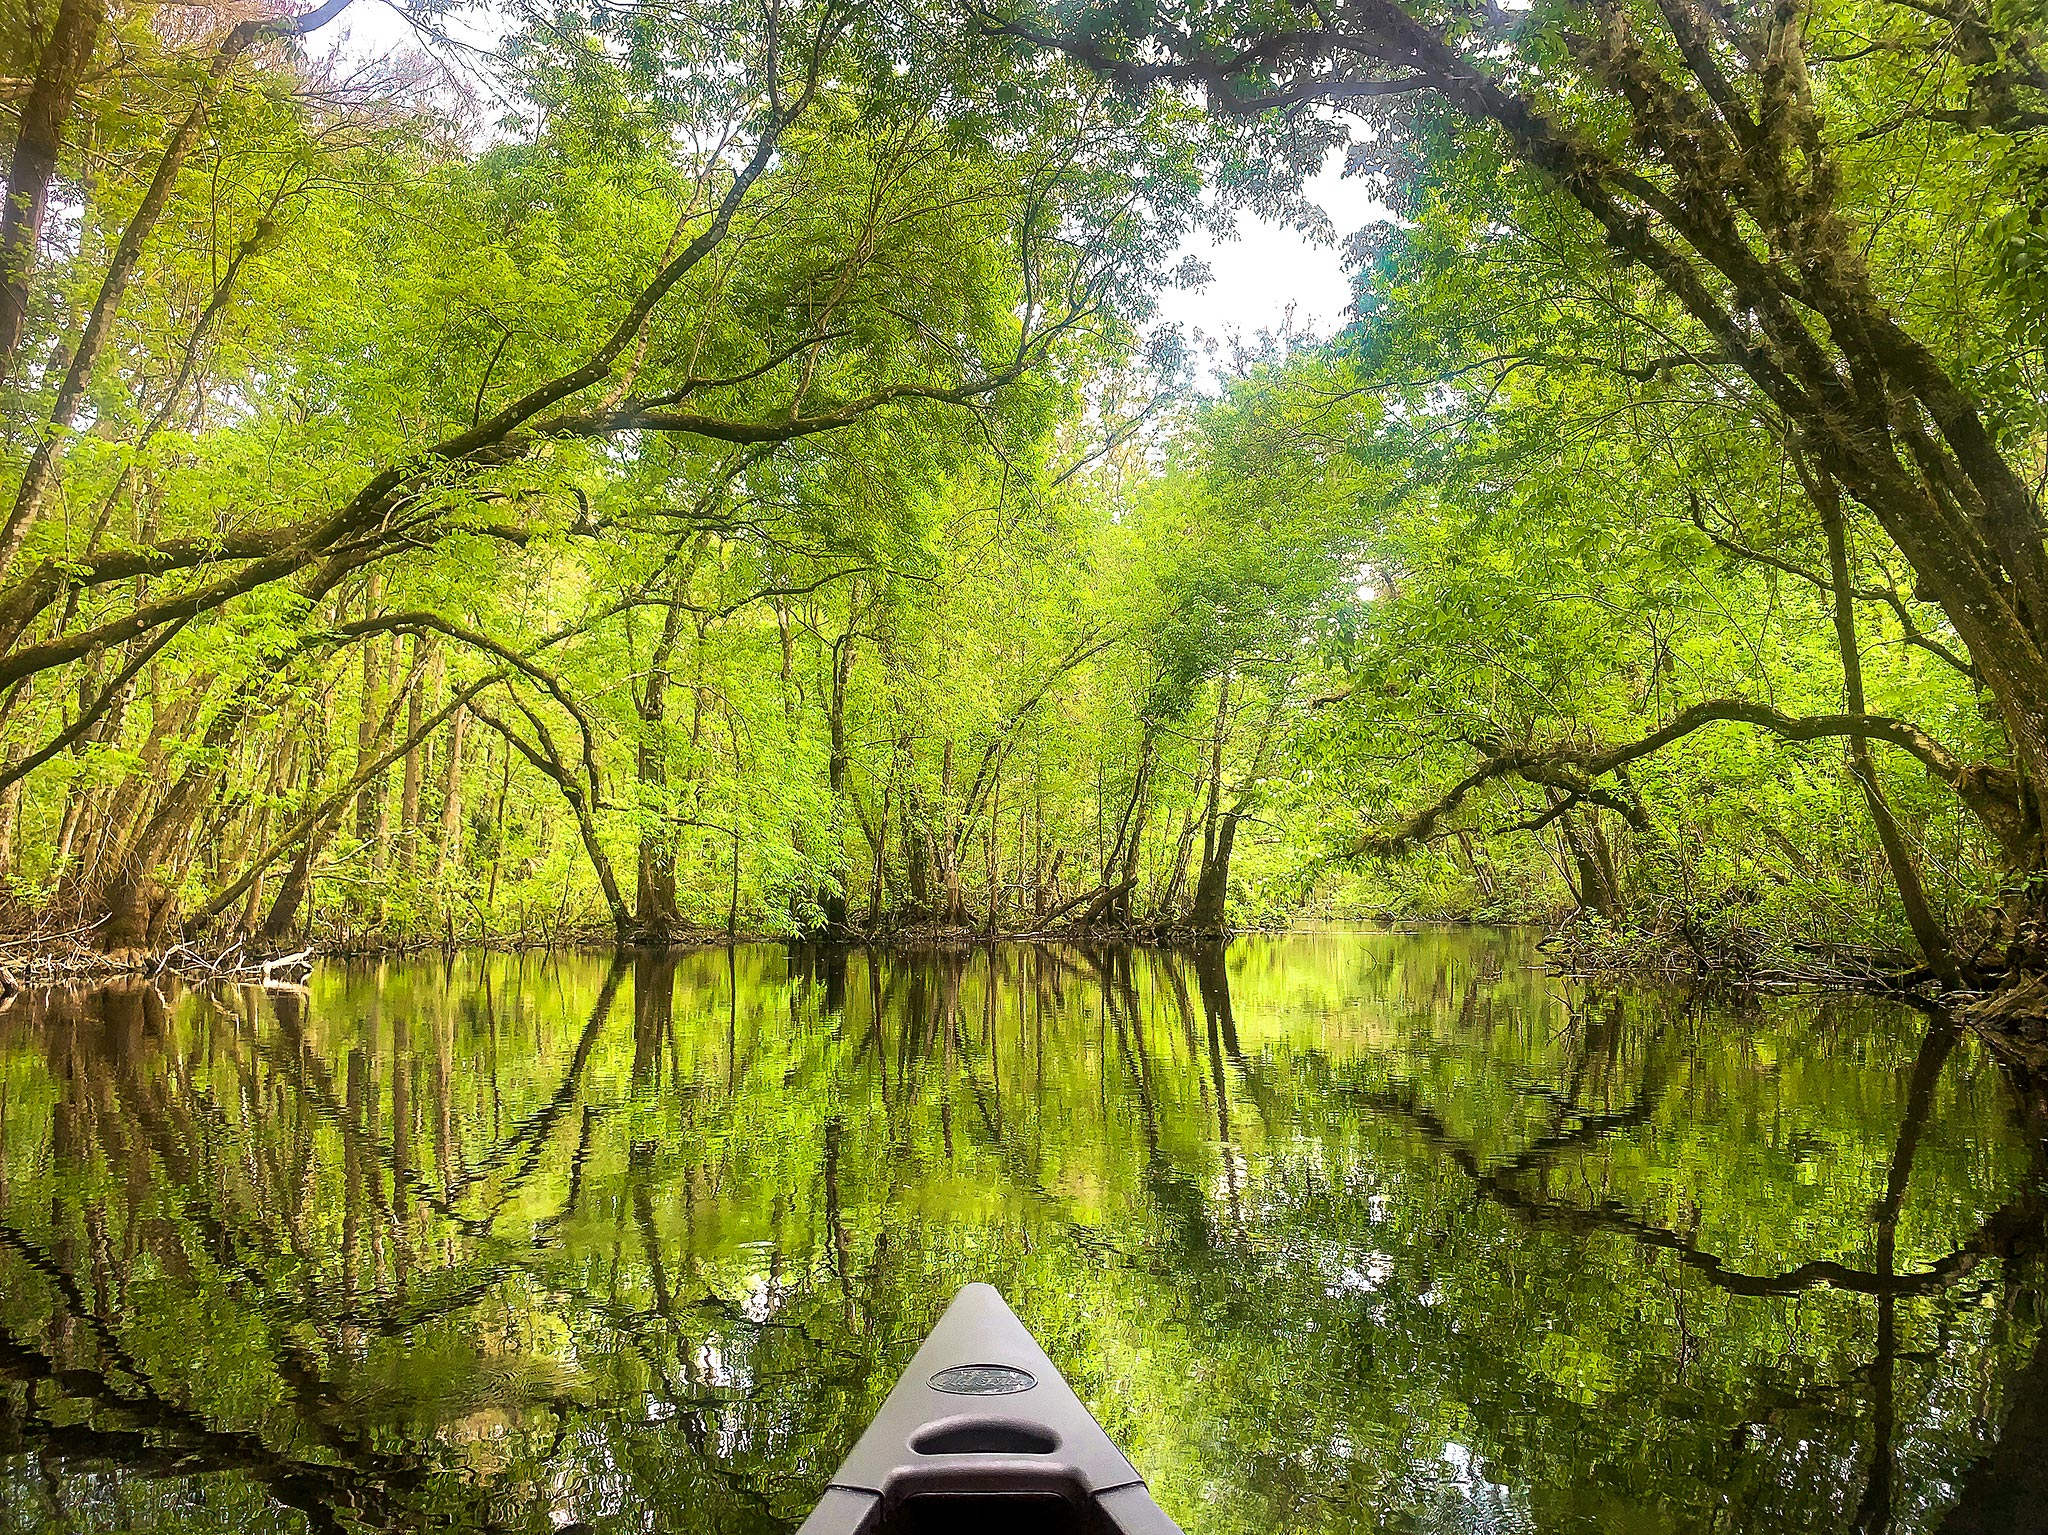 Canoeing on Gum Slough